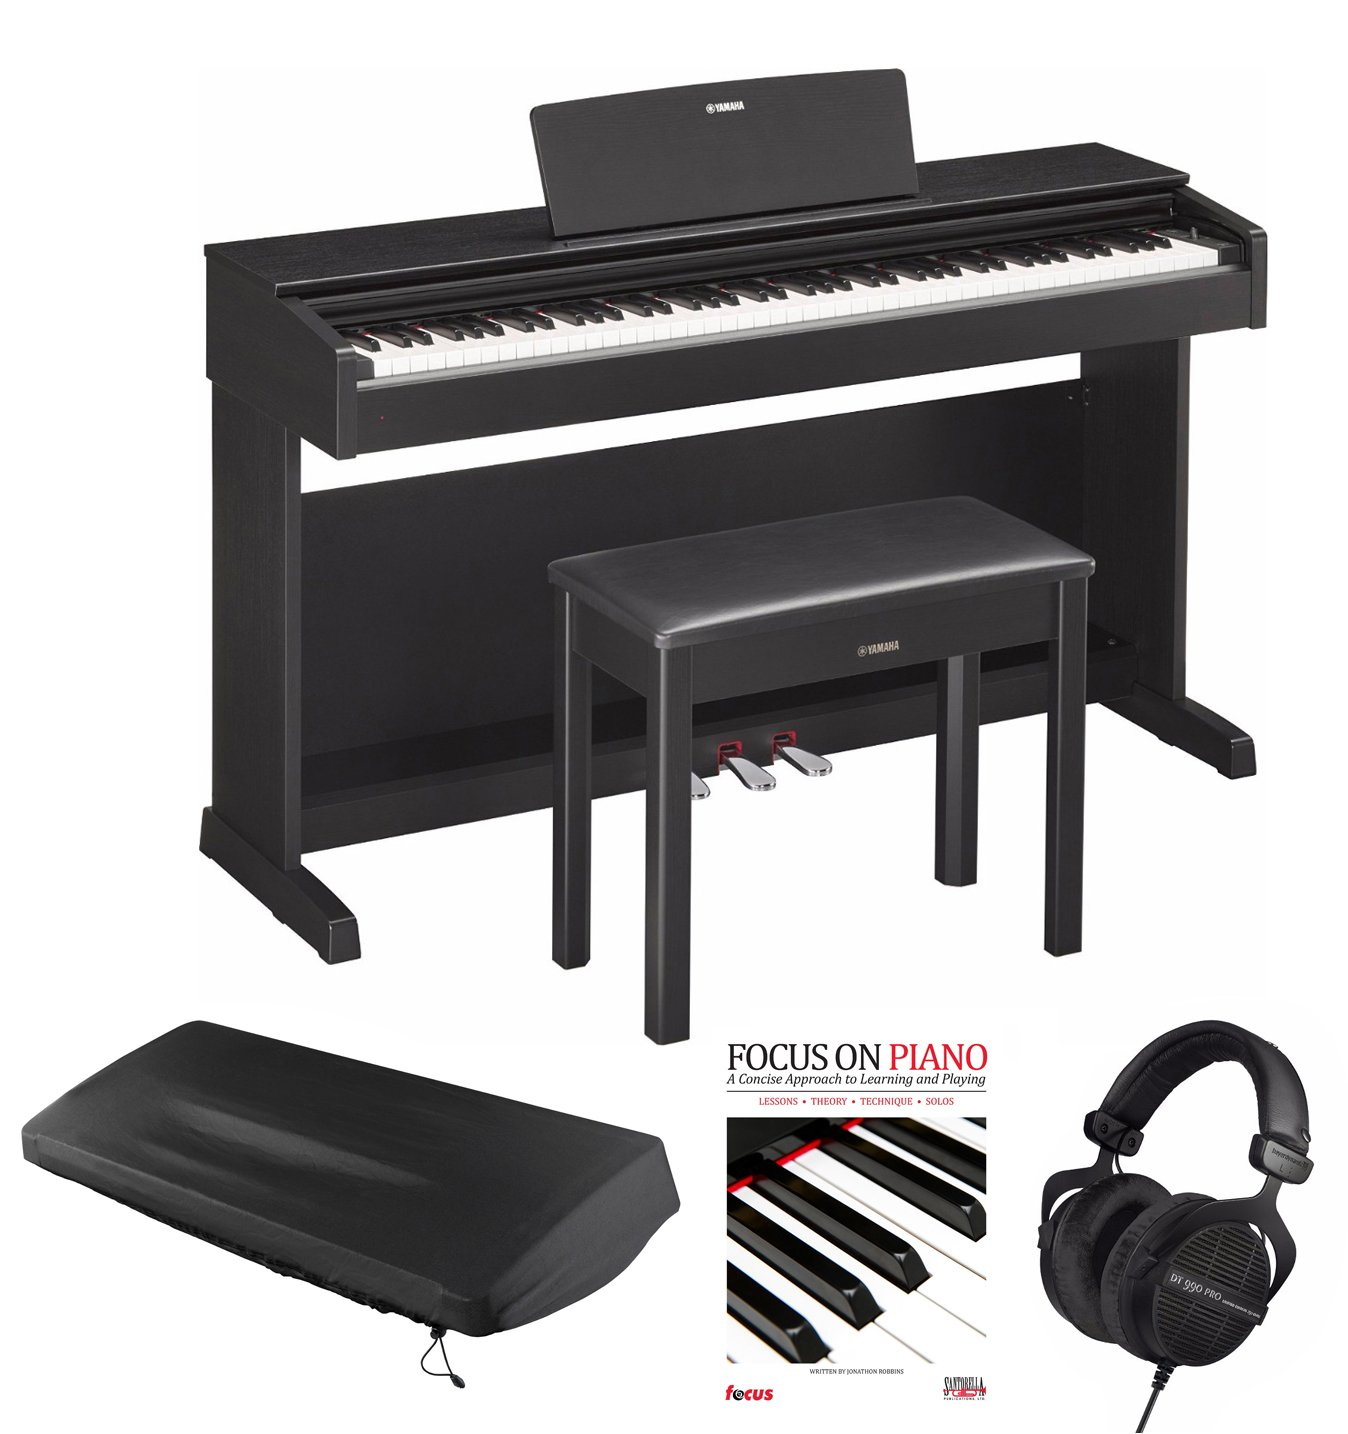 Yamaha YDP143B Digital Piano with Beyerdynami DT990 Headphones and Accessories